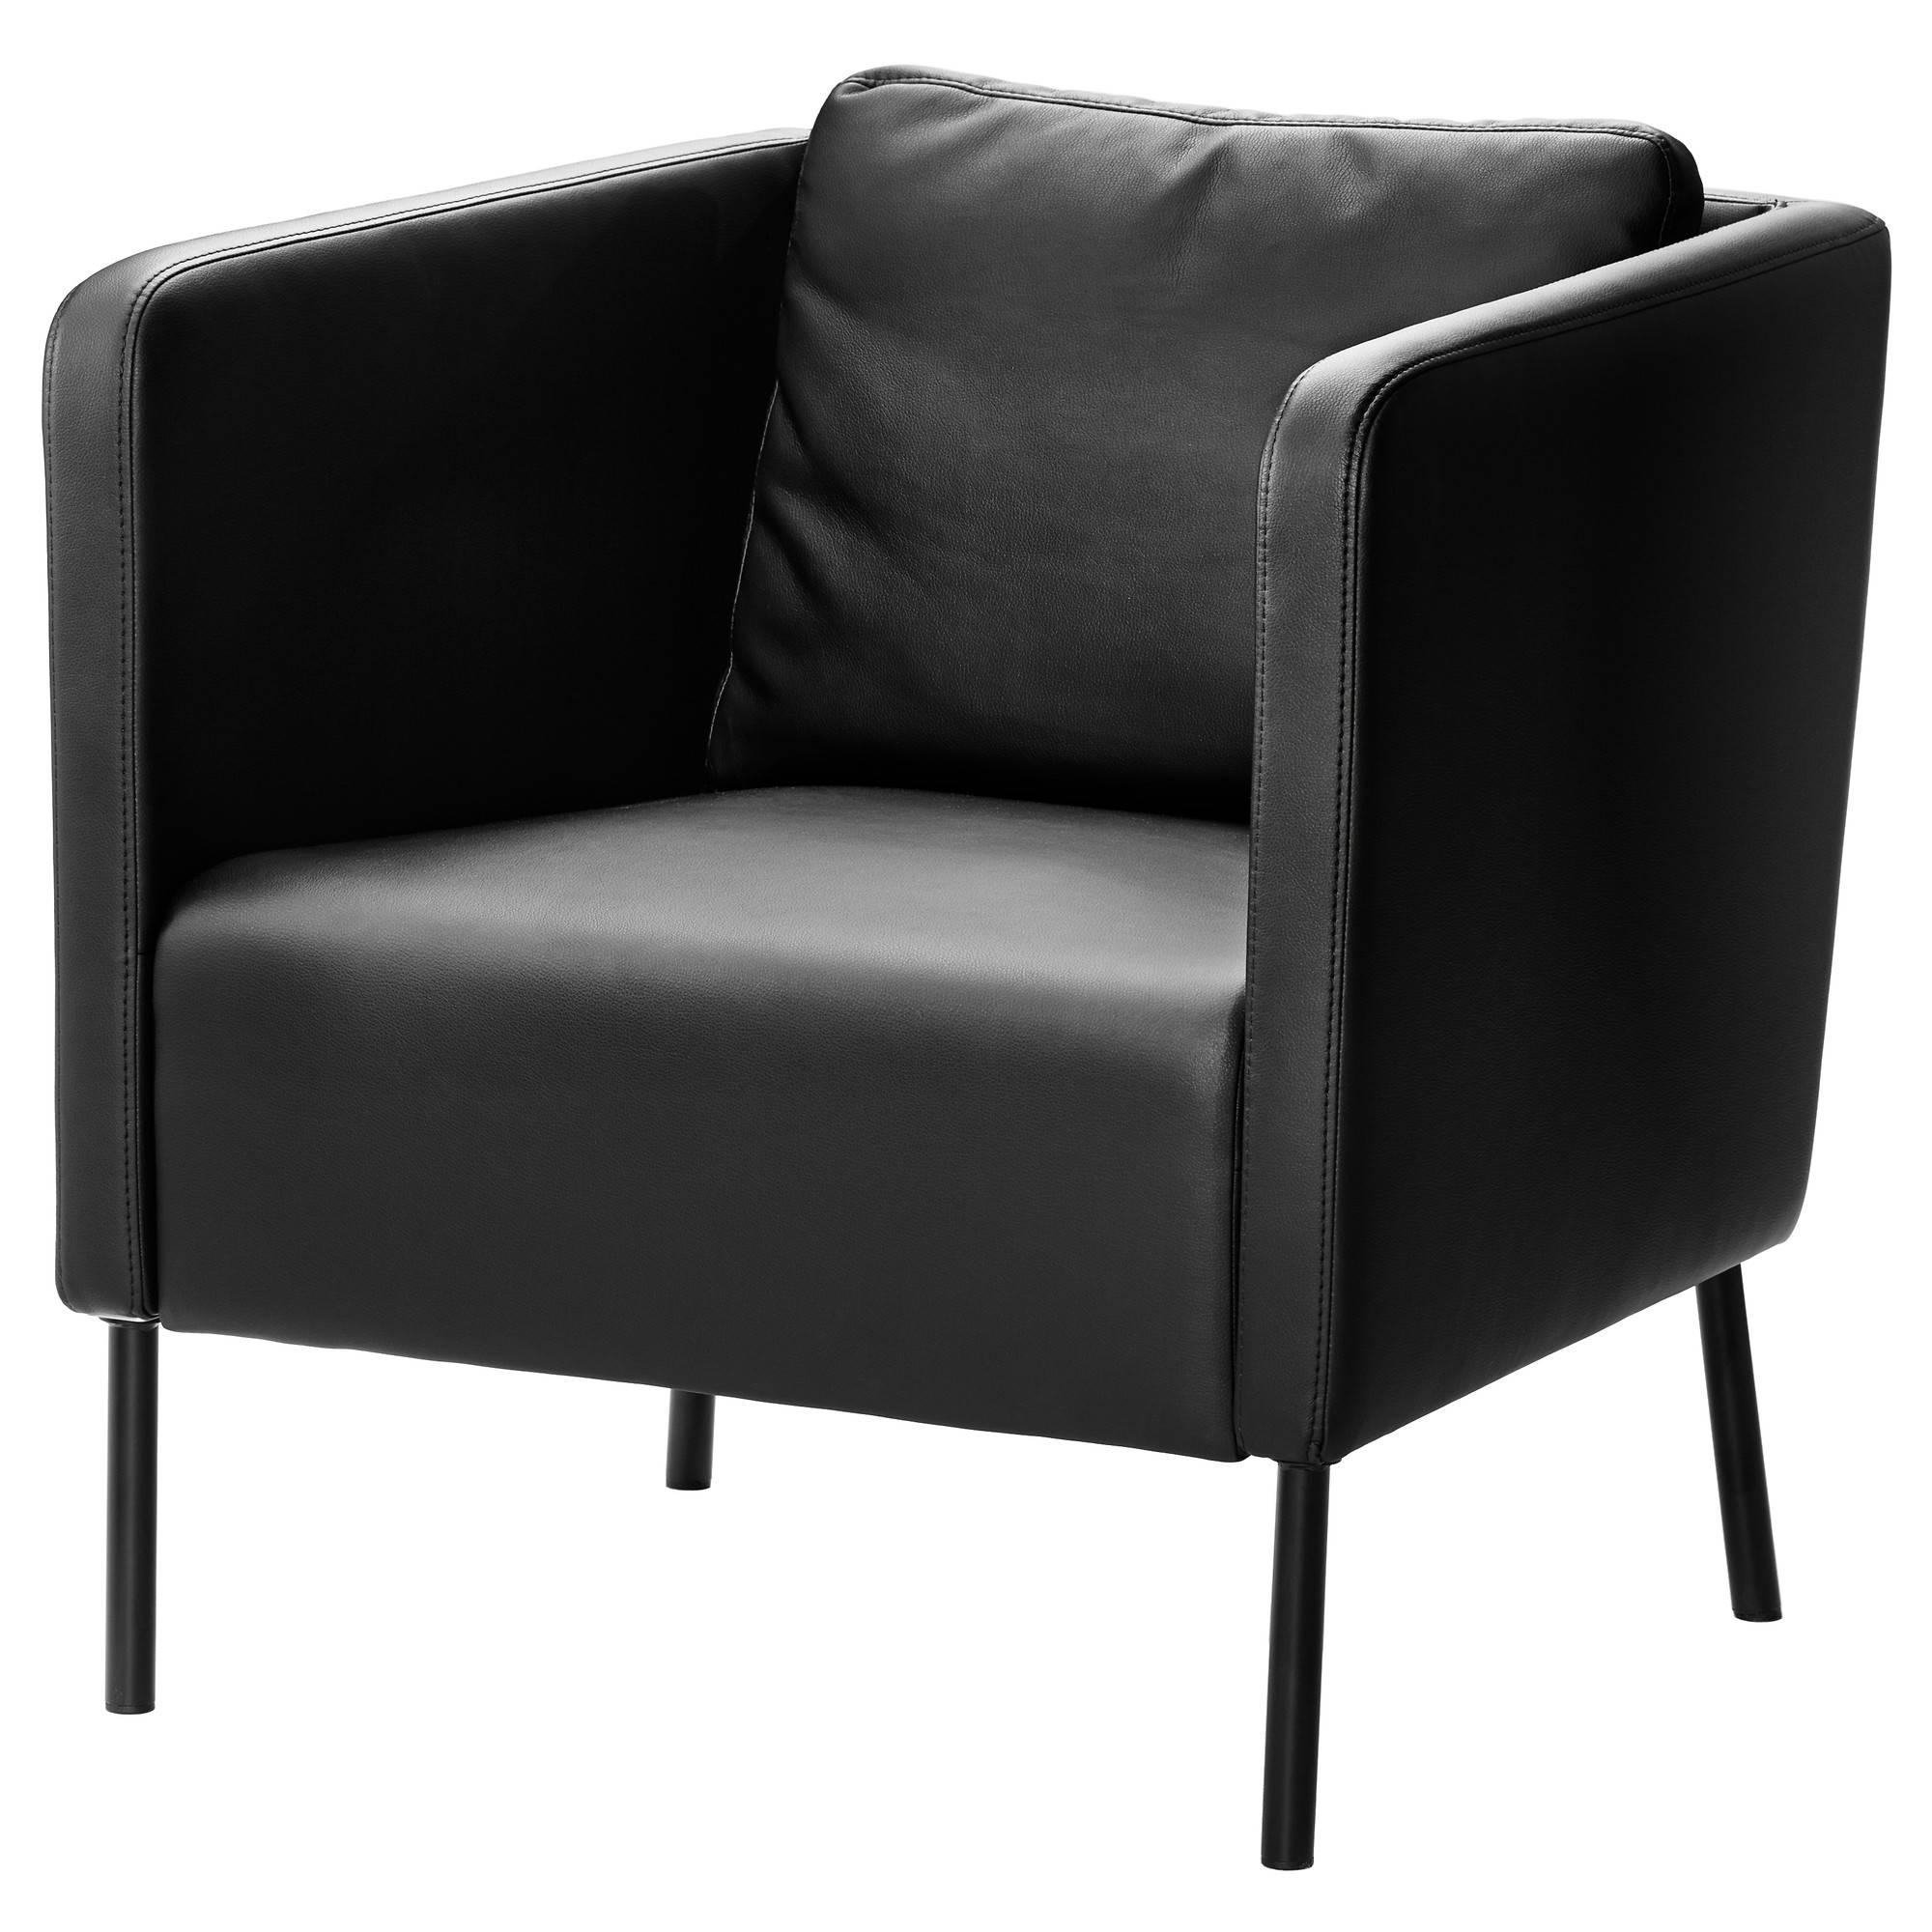 Armchairs & Recliner Chairs | Ikea with regard to Small Sofas And Chairs (Image 1 of 15)